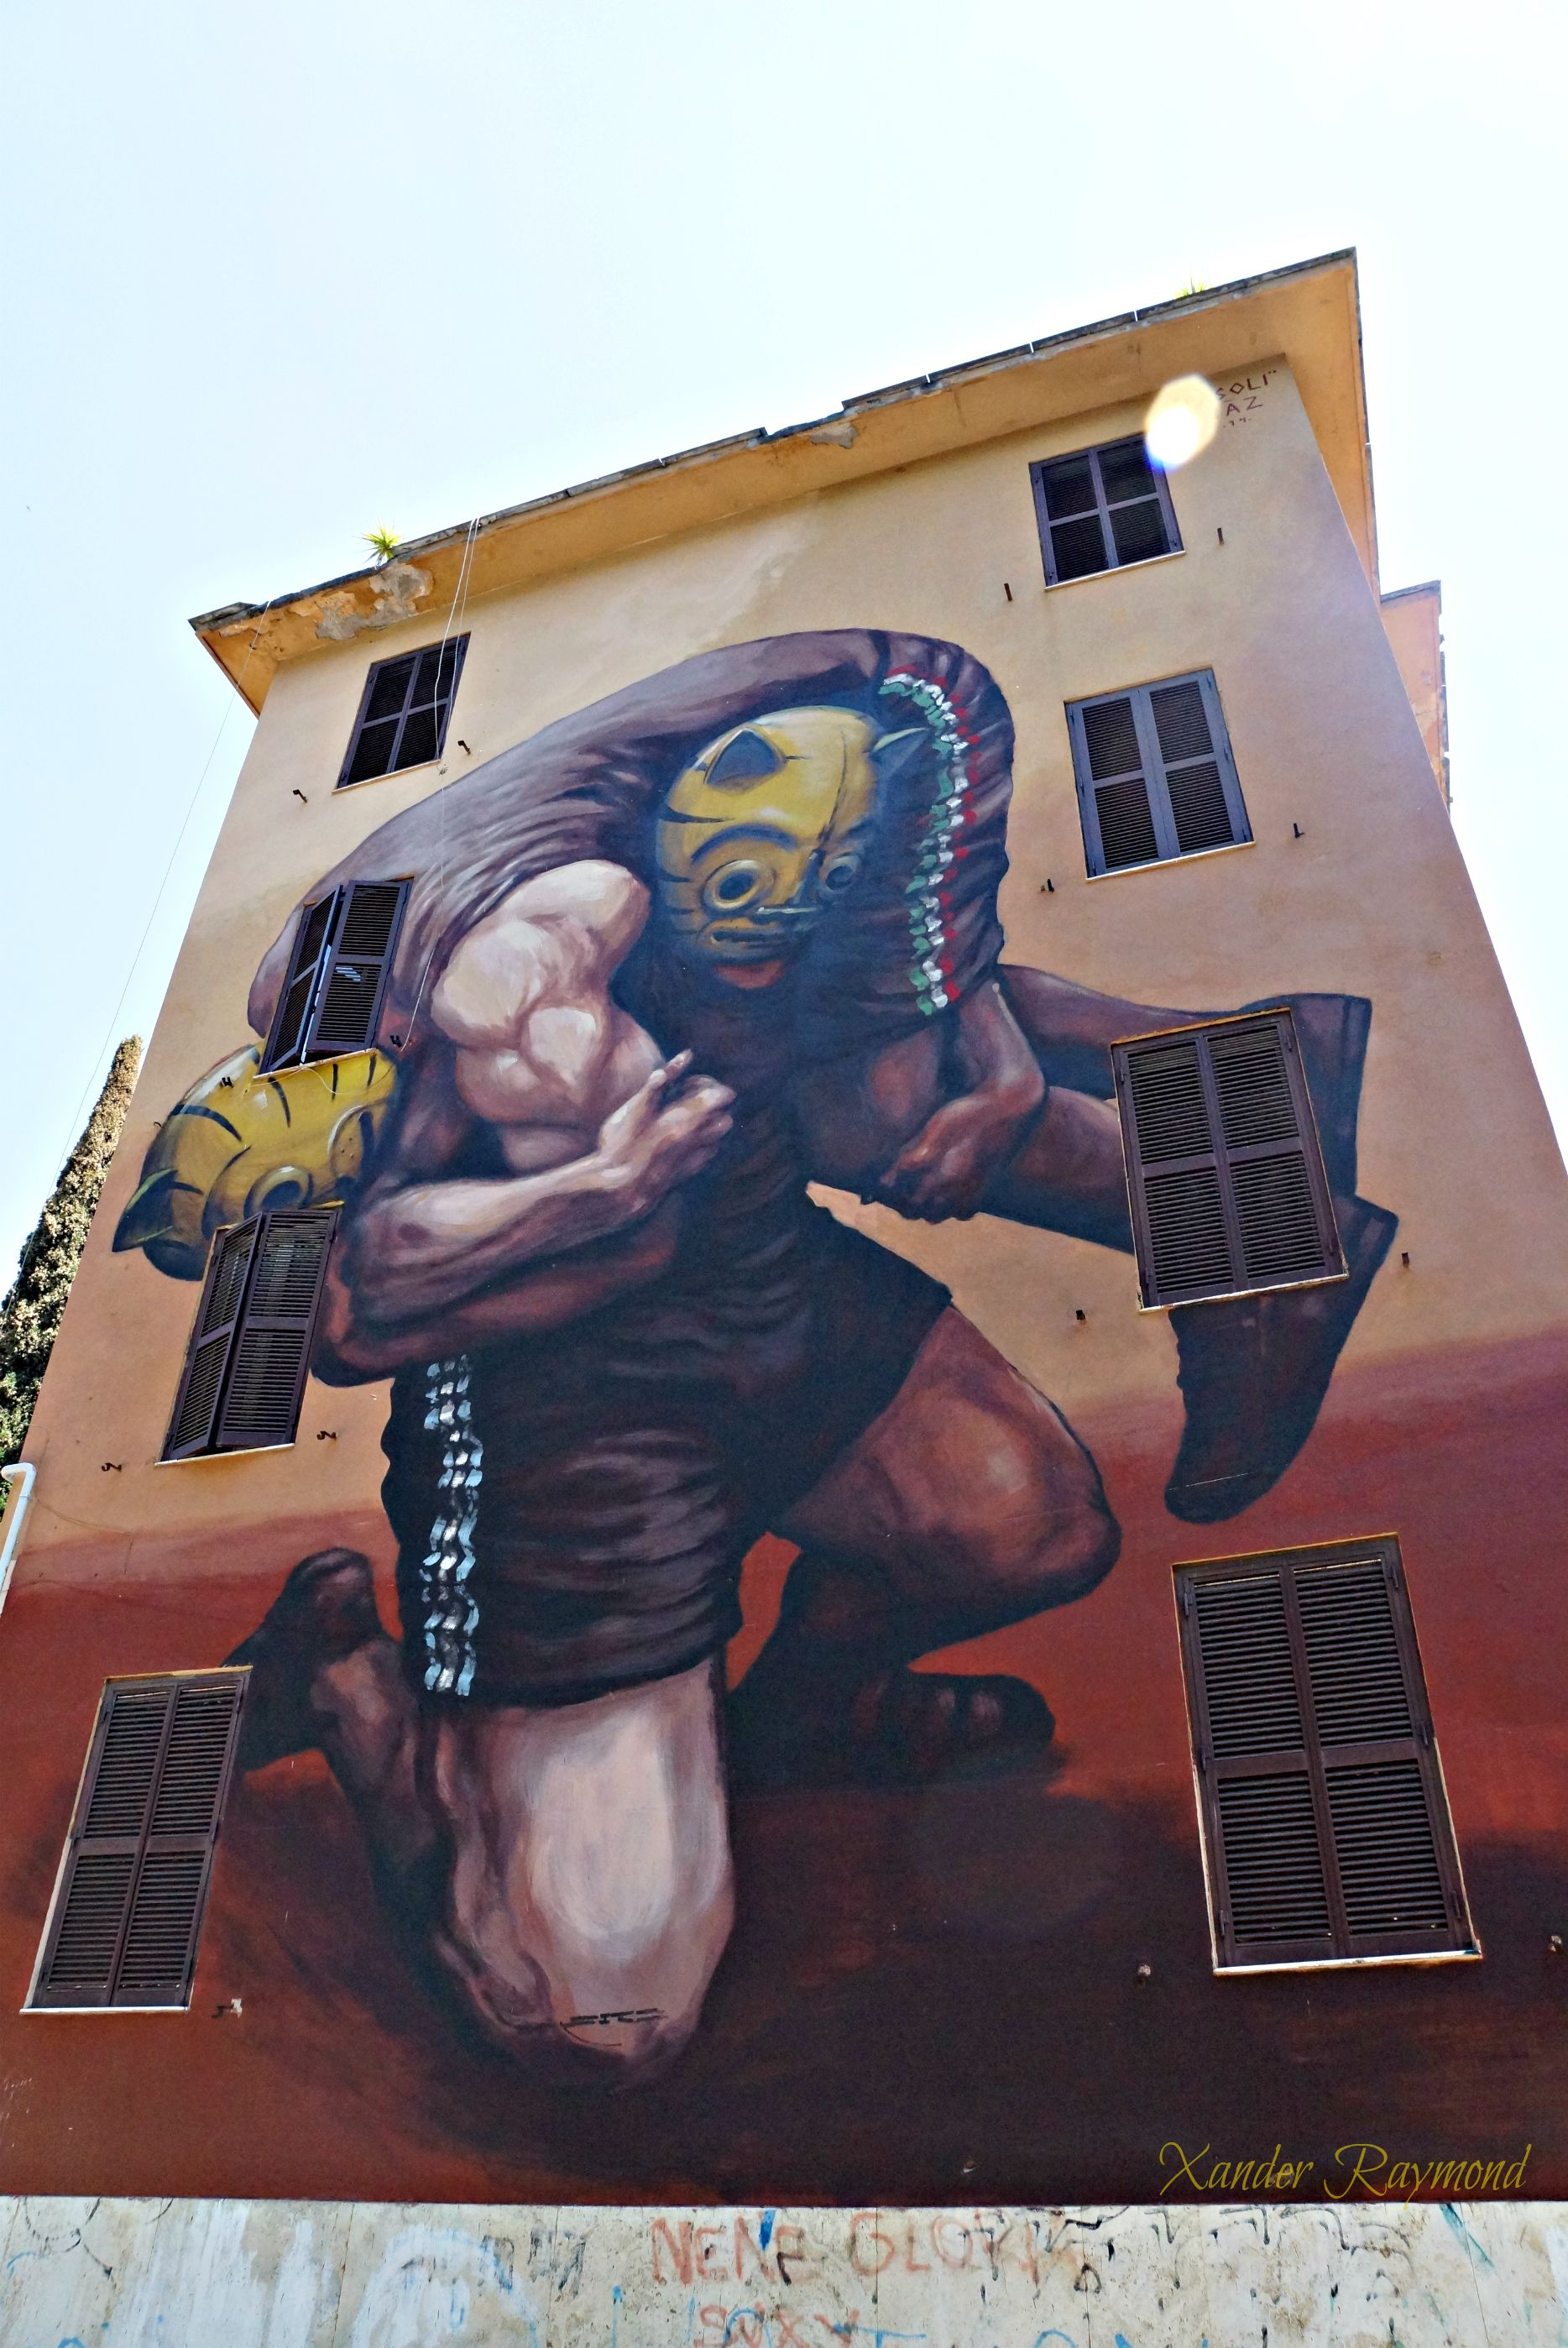 Image by Xander Raymond Photography, taken in Rome, Italy on a tree-lined street where many homes and buildings are covered with these beautiful murals